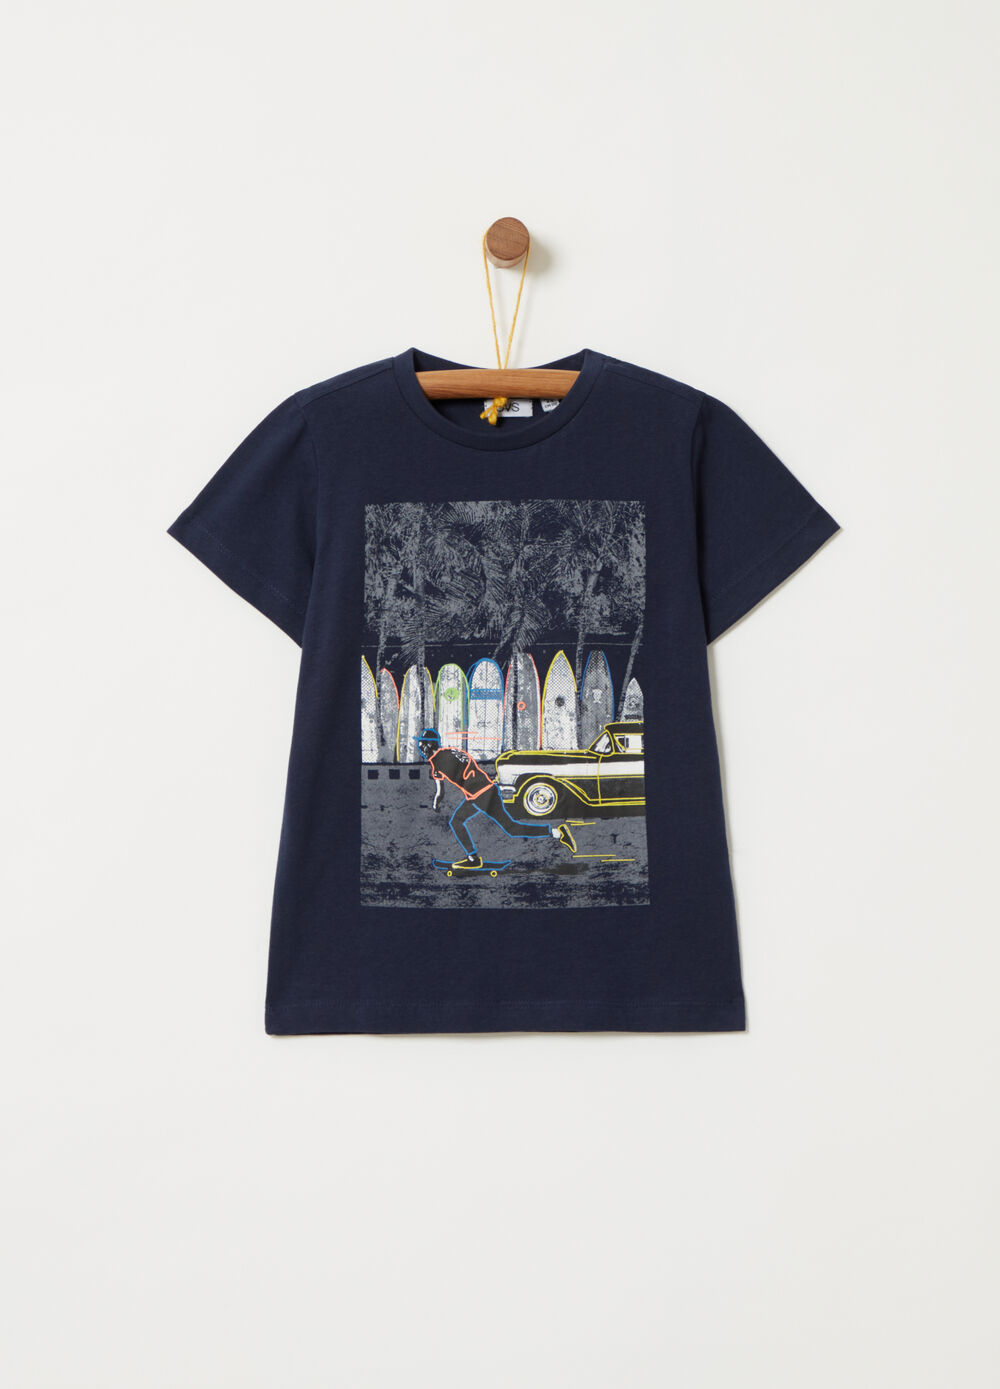 T-shirt with contrasting print on the front